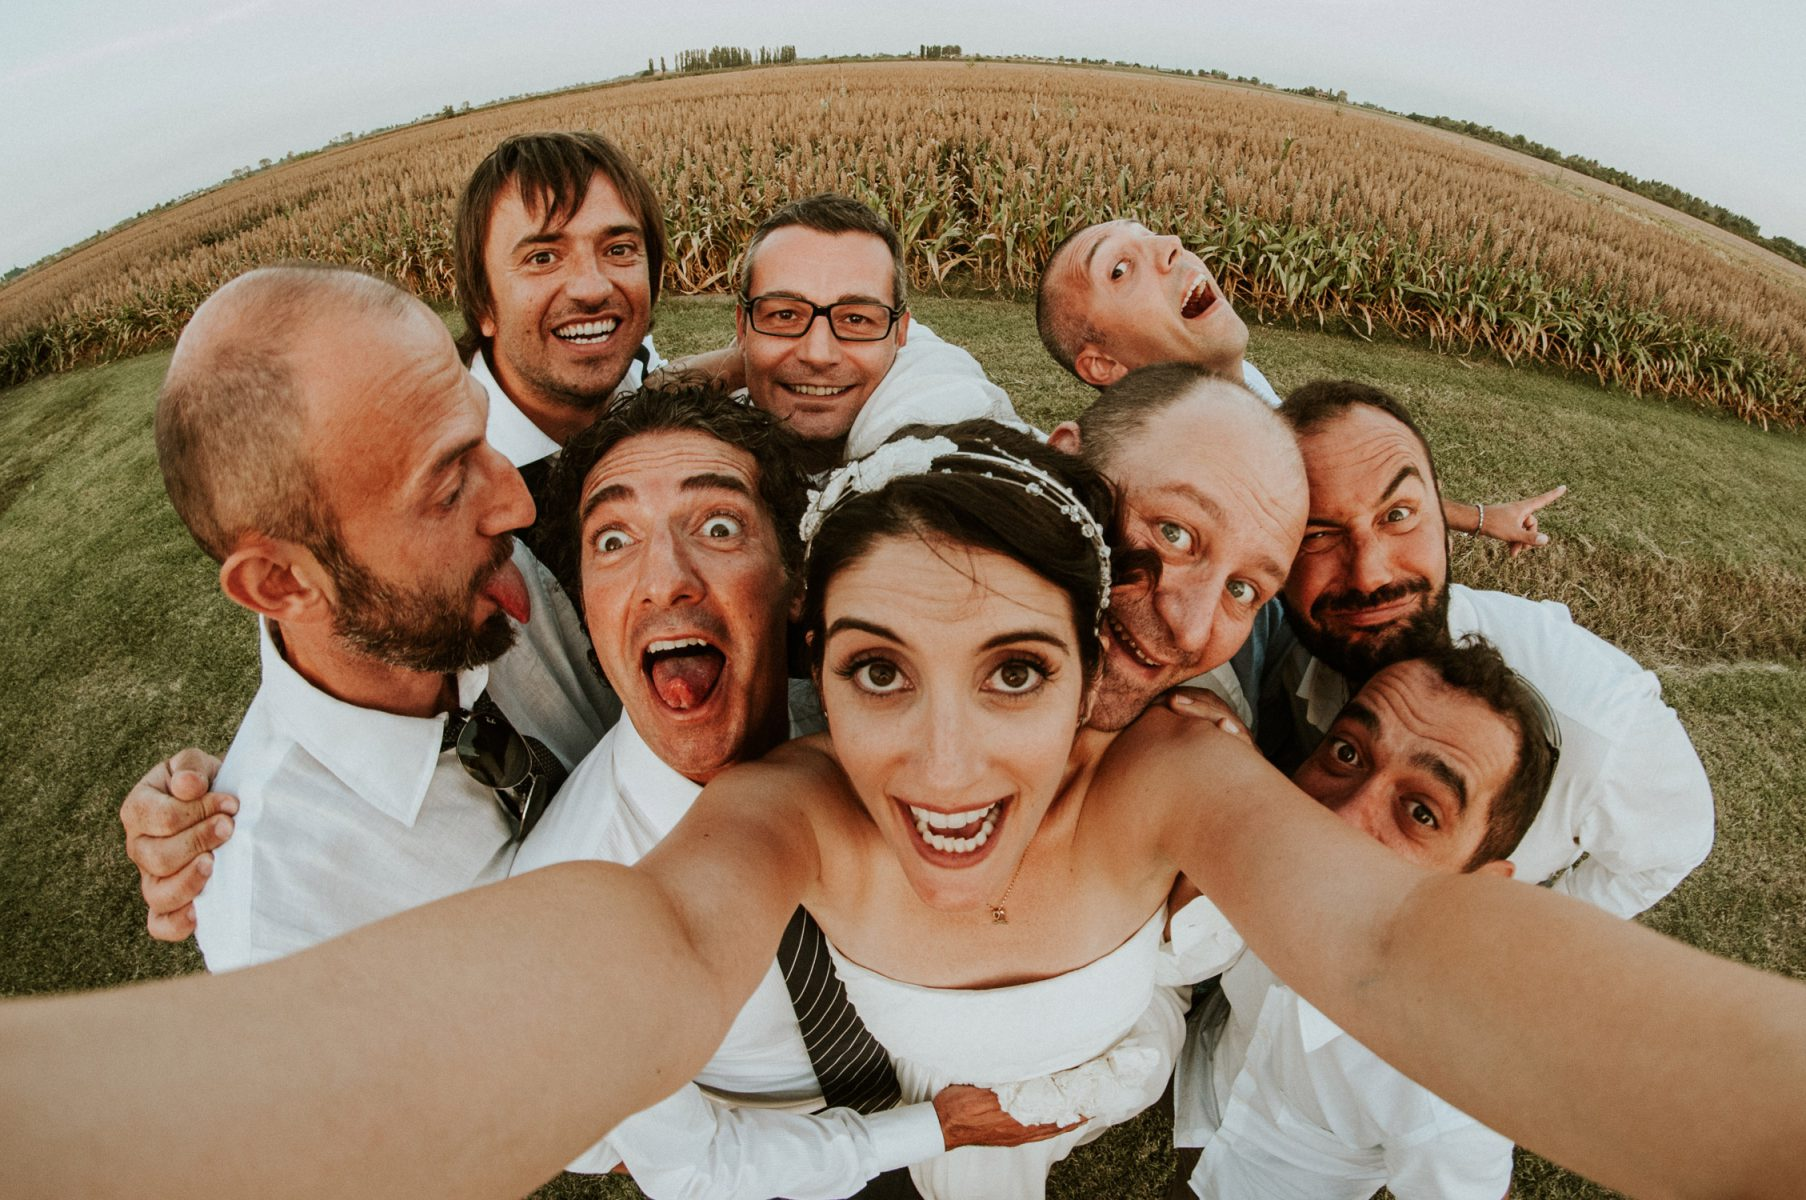 Fisheye bride portrait in Firenze